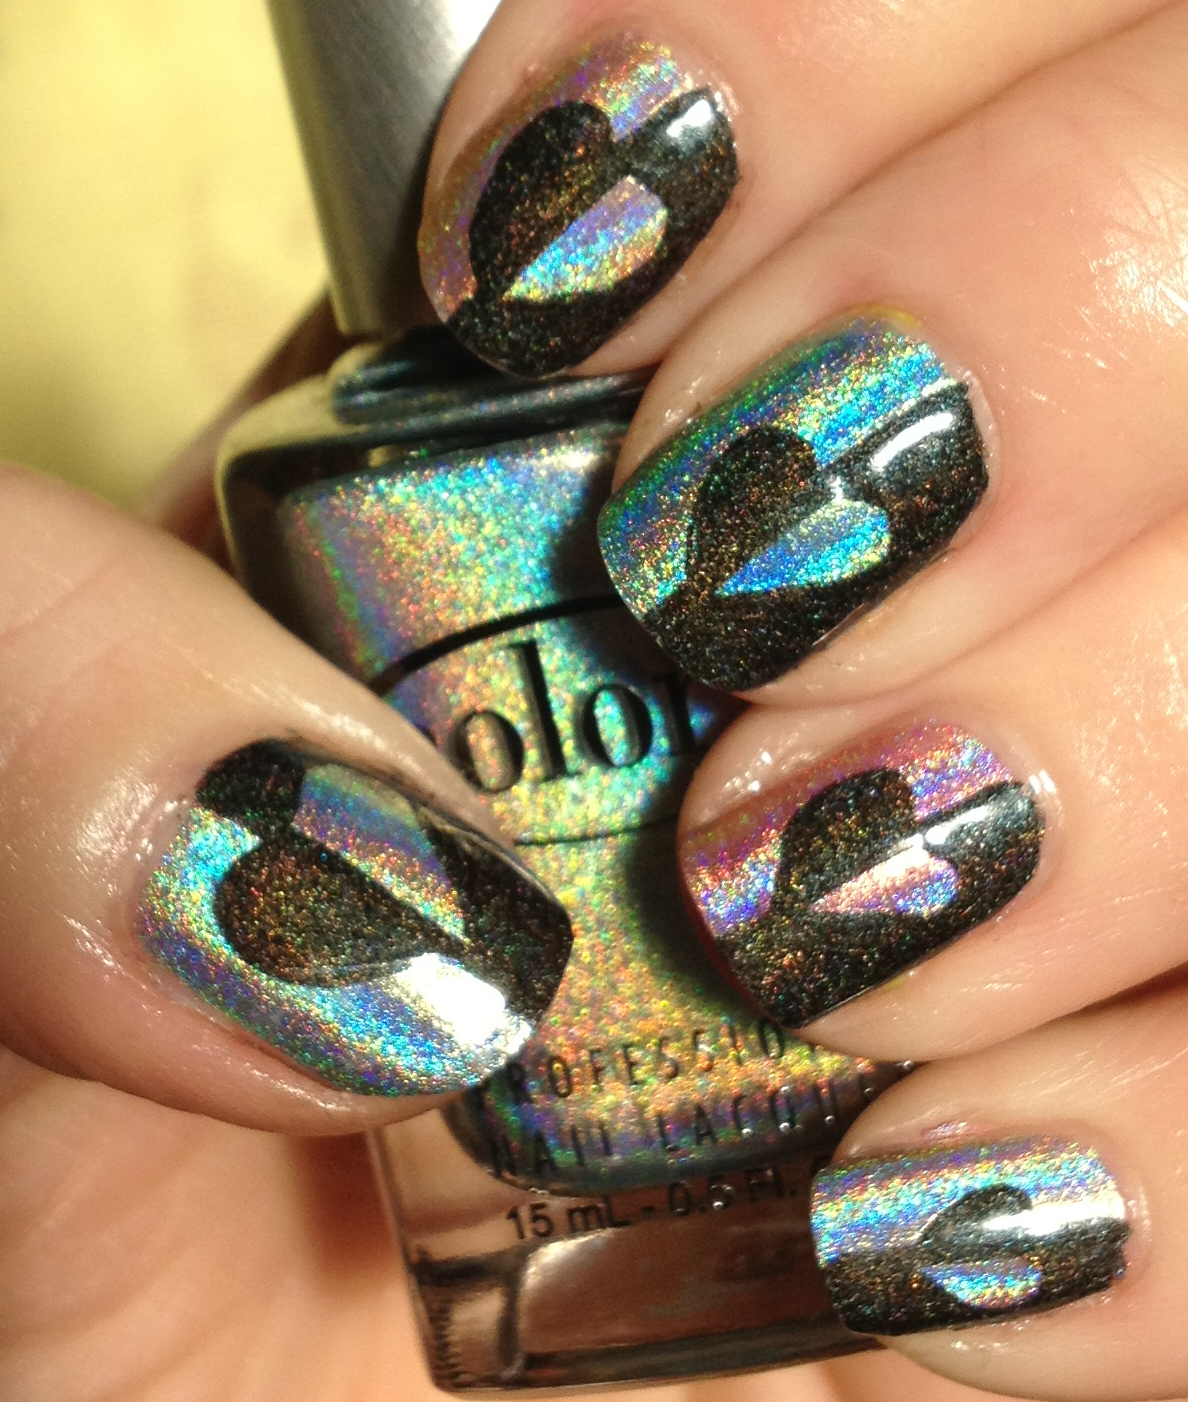 Superficially Colorful: 31 Days Challenge Day 7 - Ombre Or